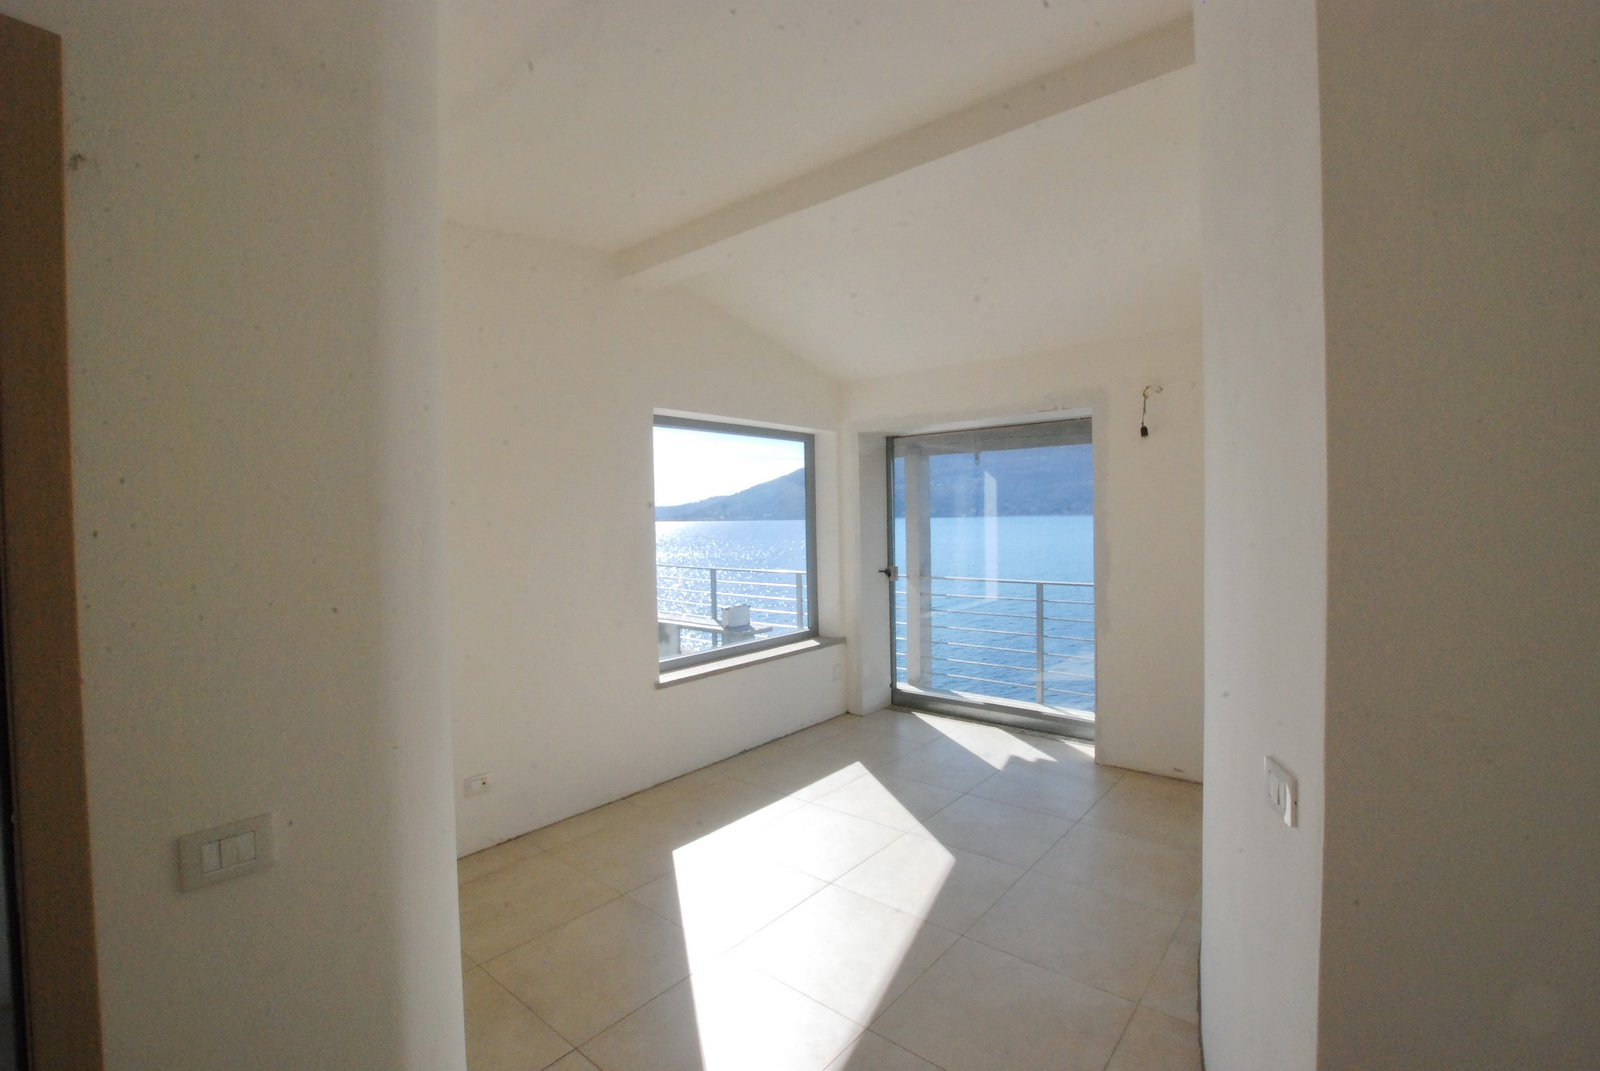 Pieds dans l'eau property for sale in Leggiuno - room with a view